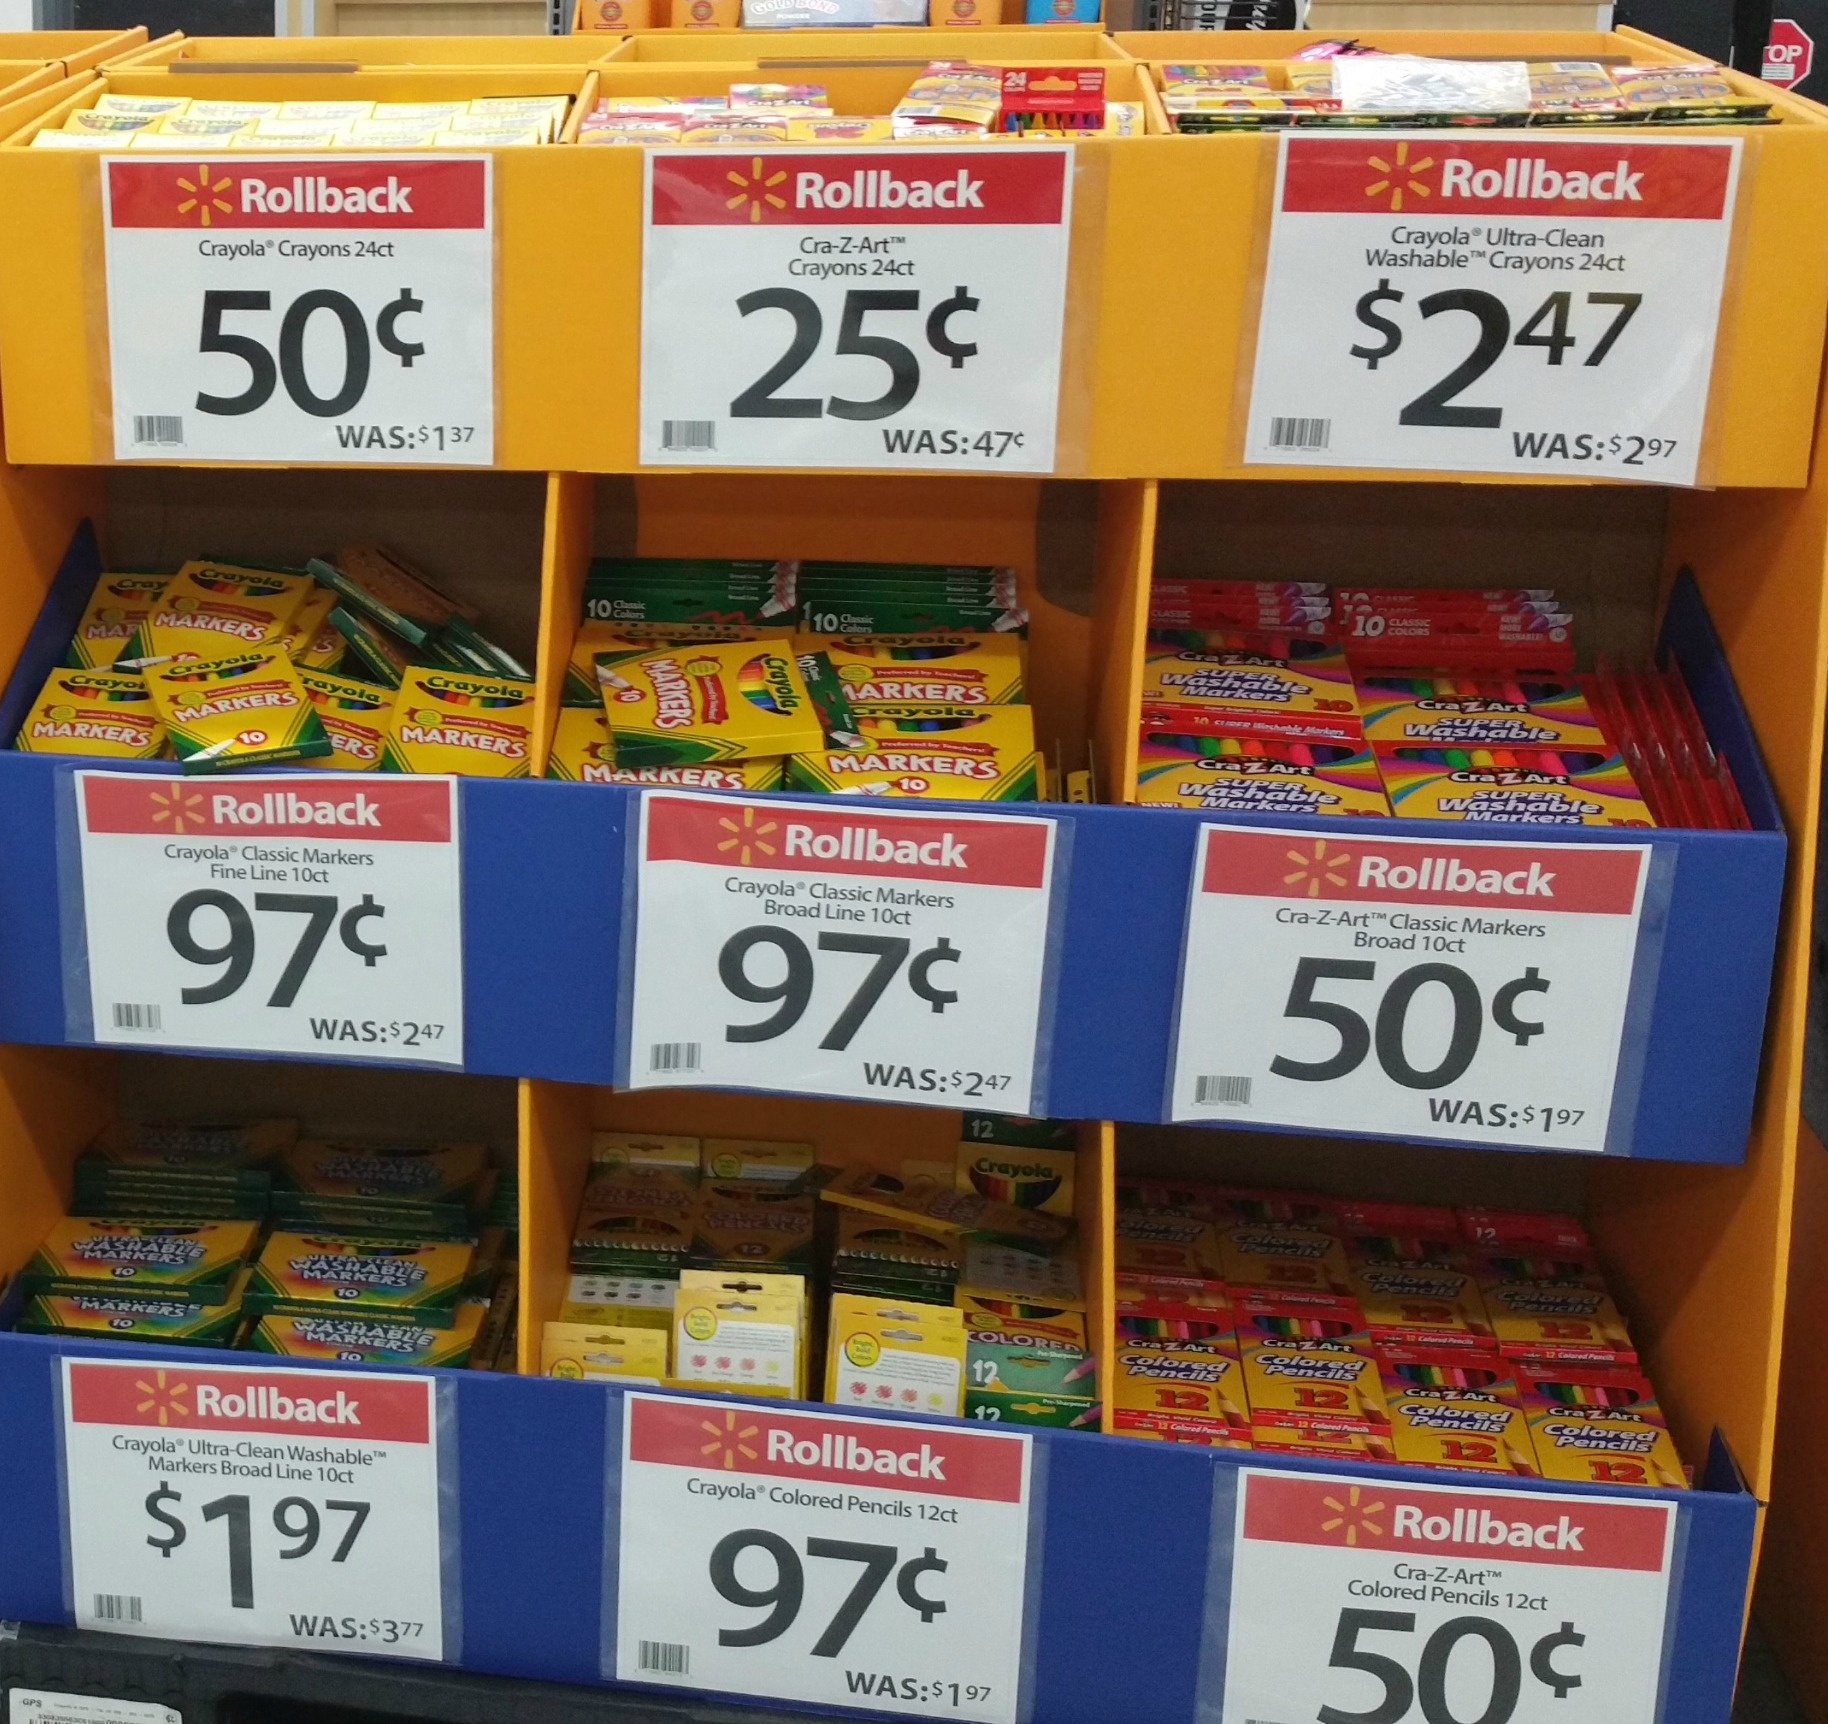 Back To School Supplies! Watch My Video And See How We Only Spend $20 - Free Printable Coupons For School Supplies At Walmart